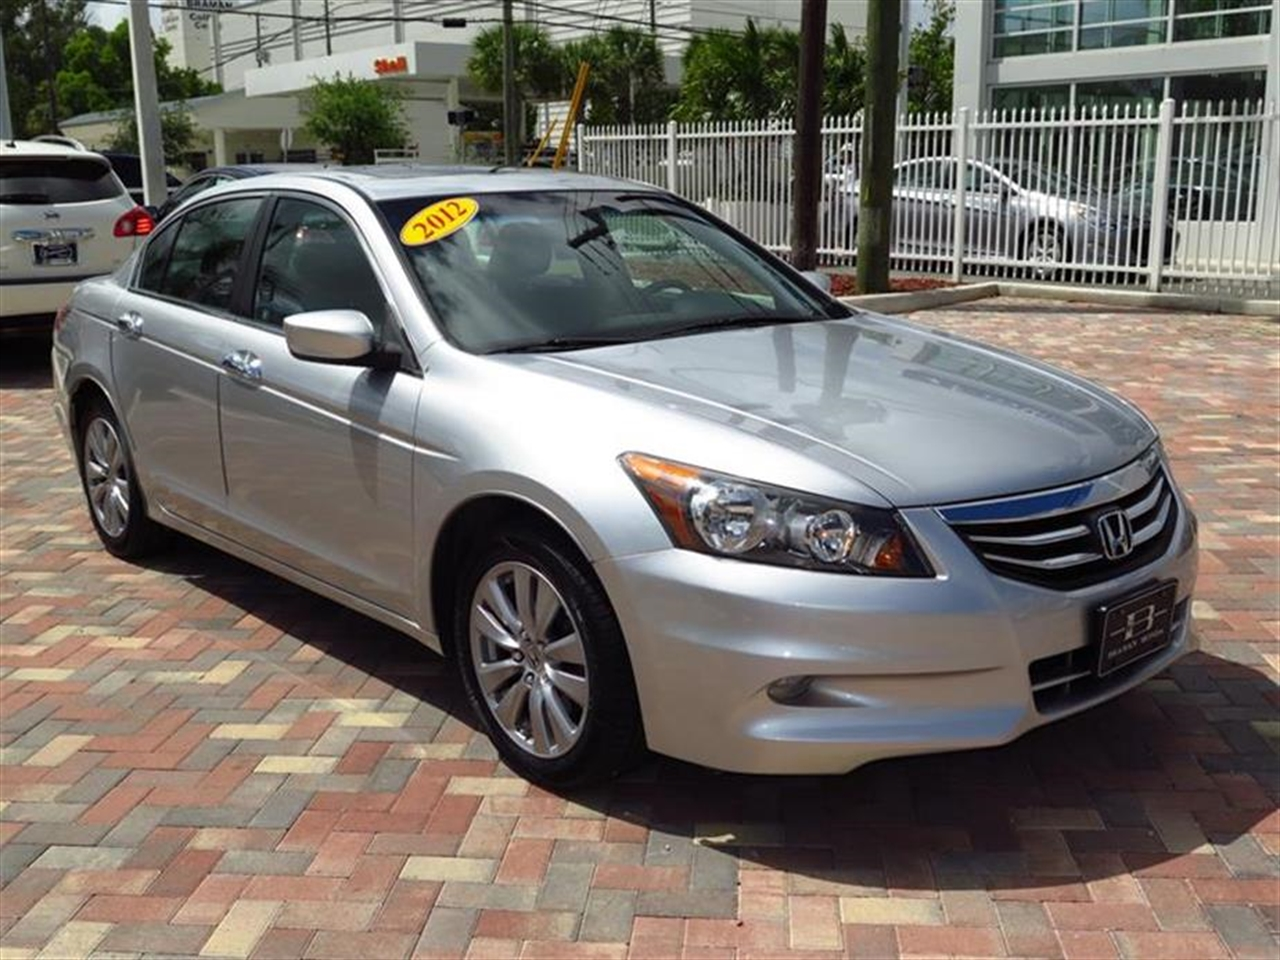 2012 HONDA ACCORD SDN 4dr V6 Auto EX 16336 miles 2 12V pwr outlets Air conditioning wair filt